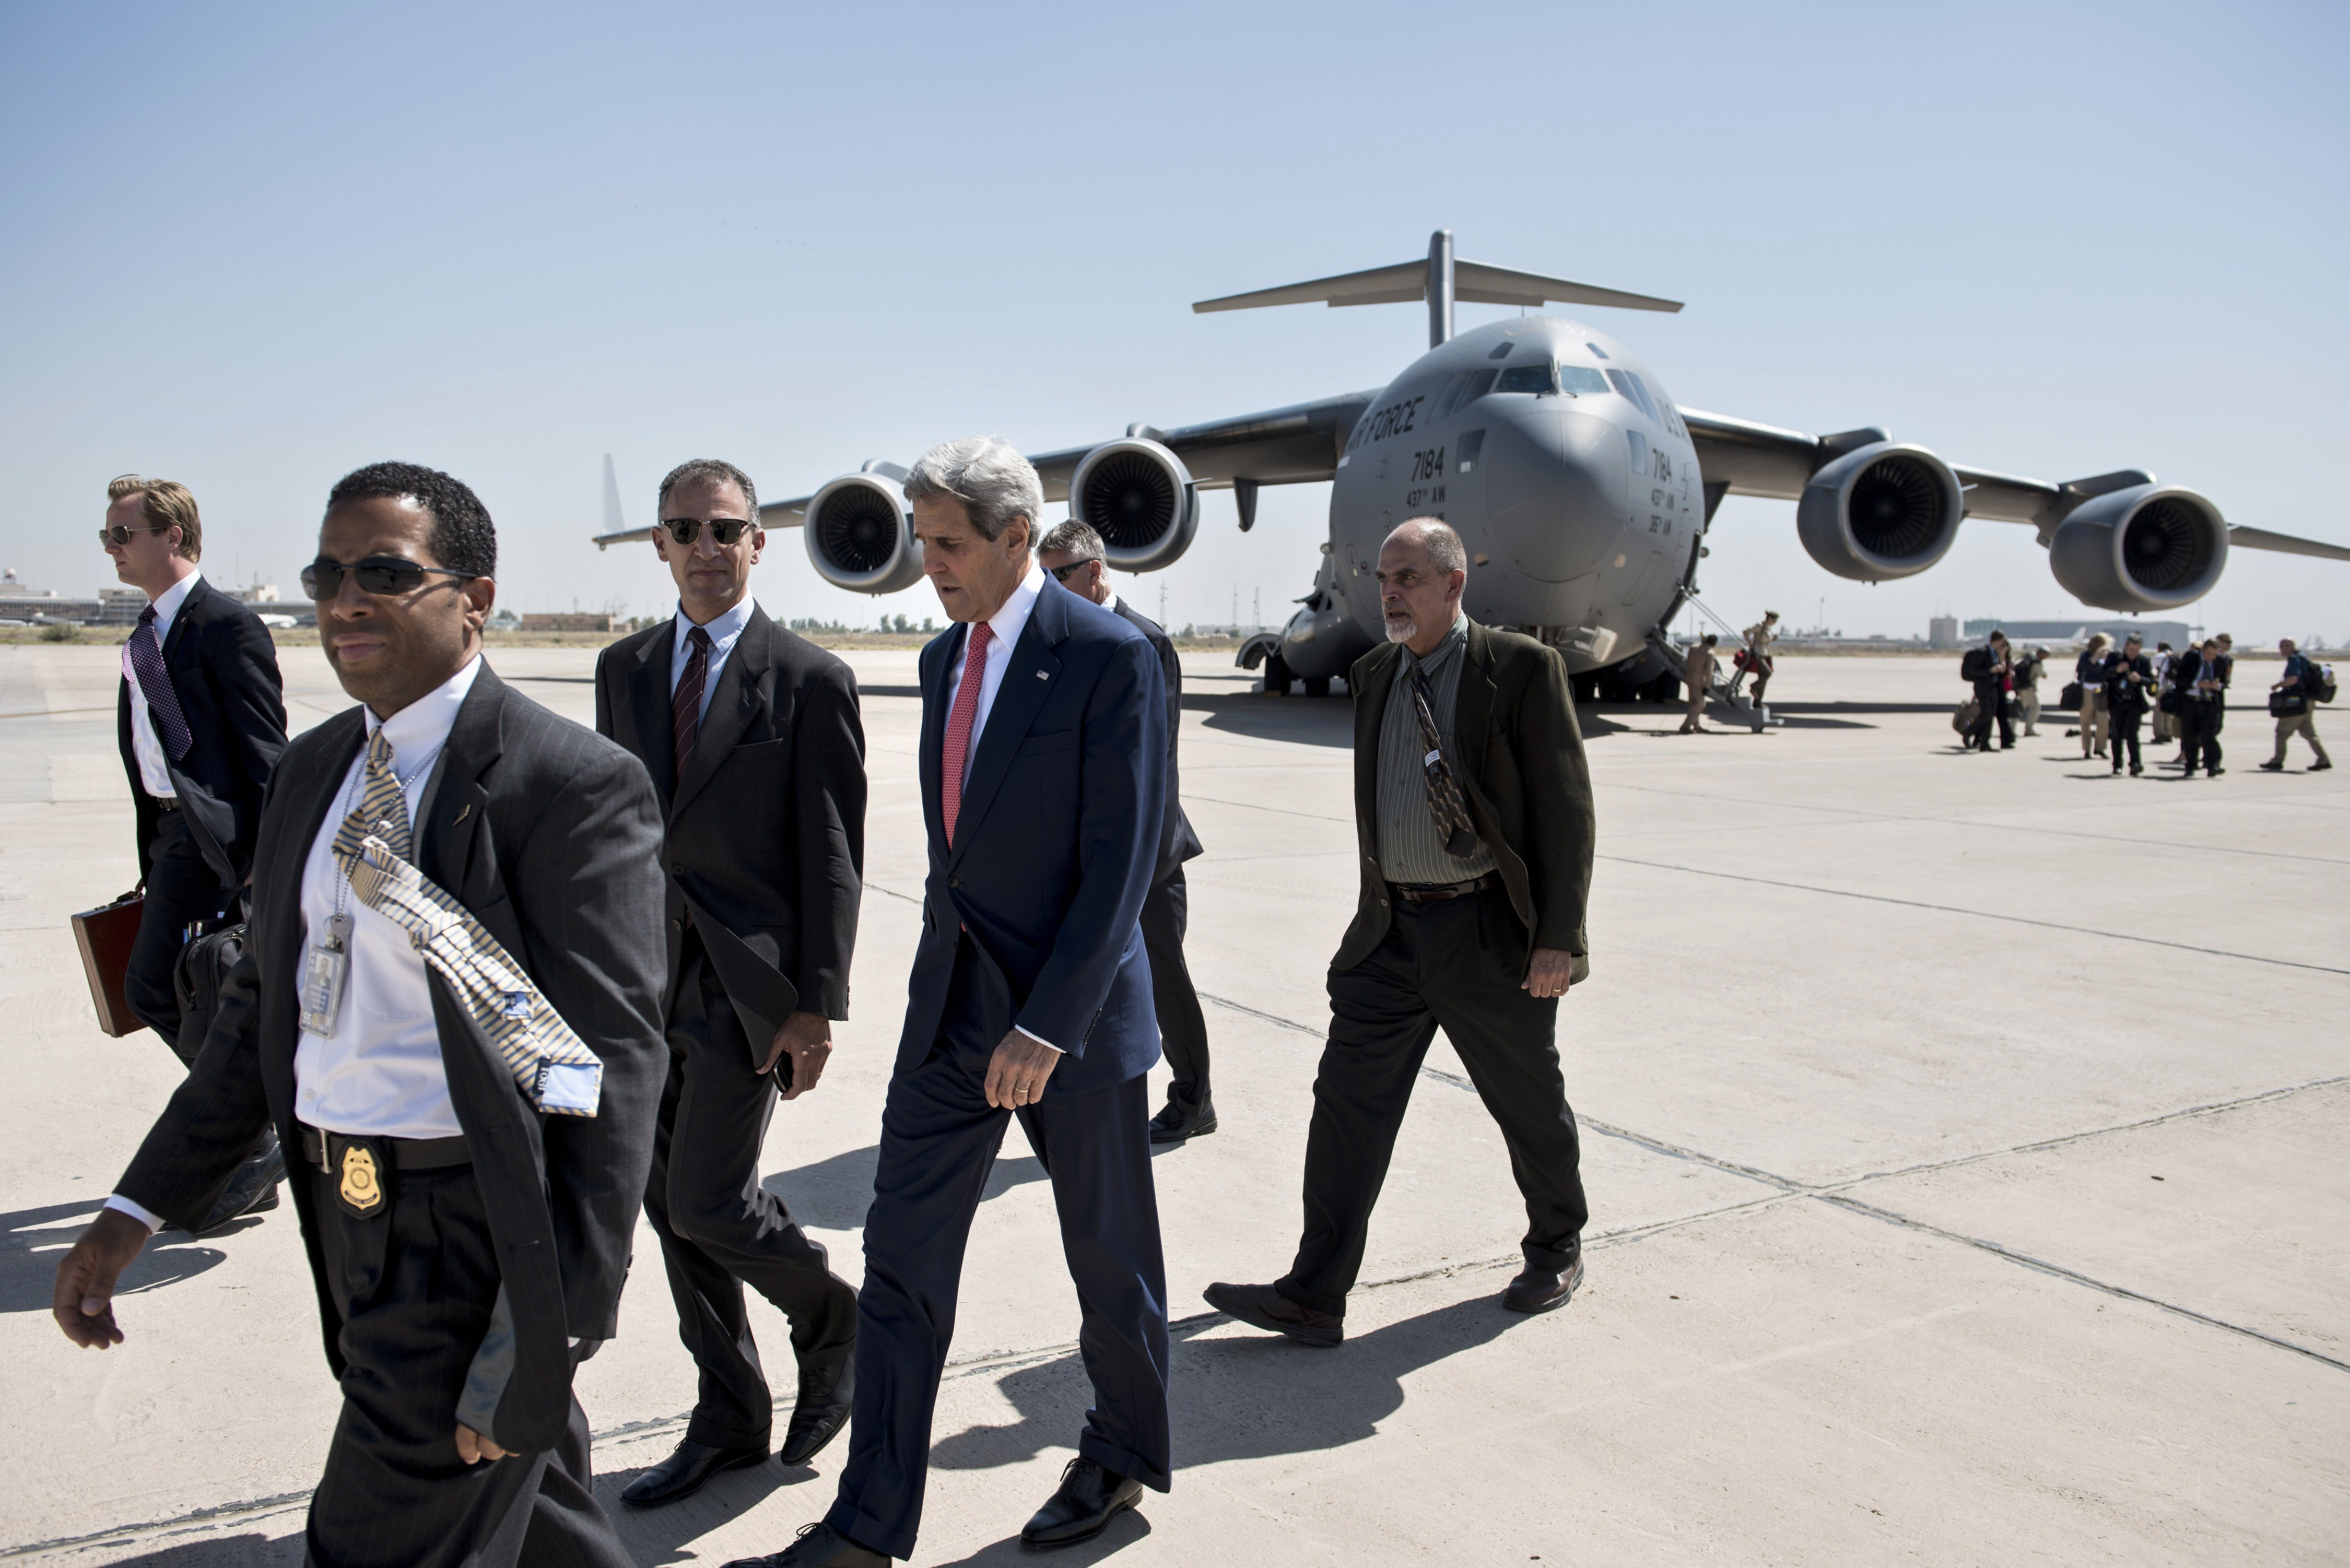 U.S. Secretary of State John Kerry (2R) arrives at Baghdad Airport on September 10, 2014.